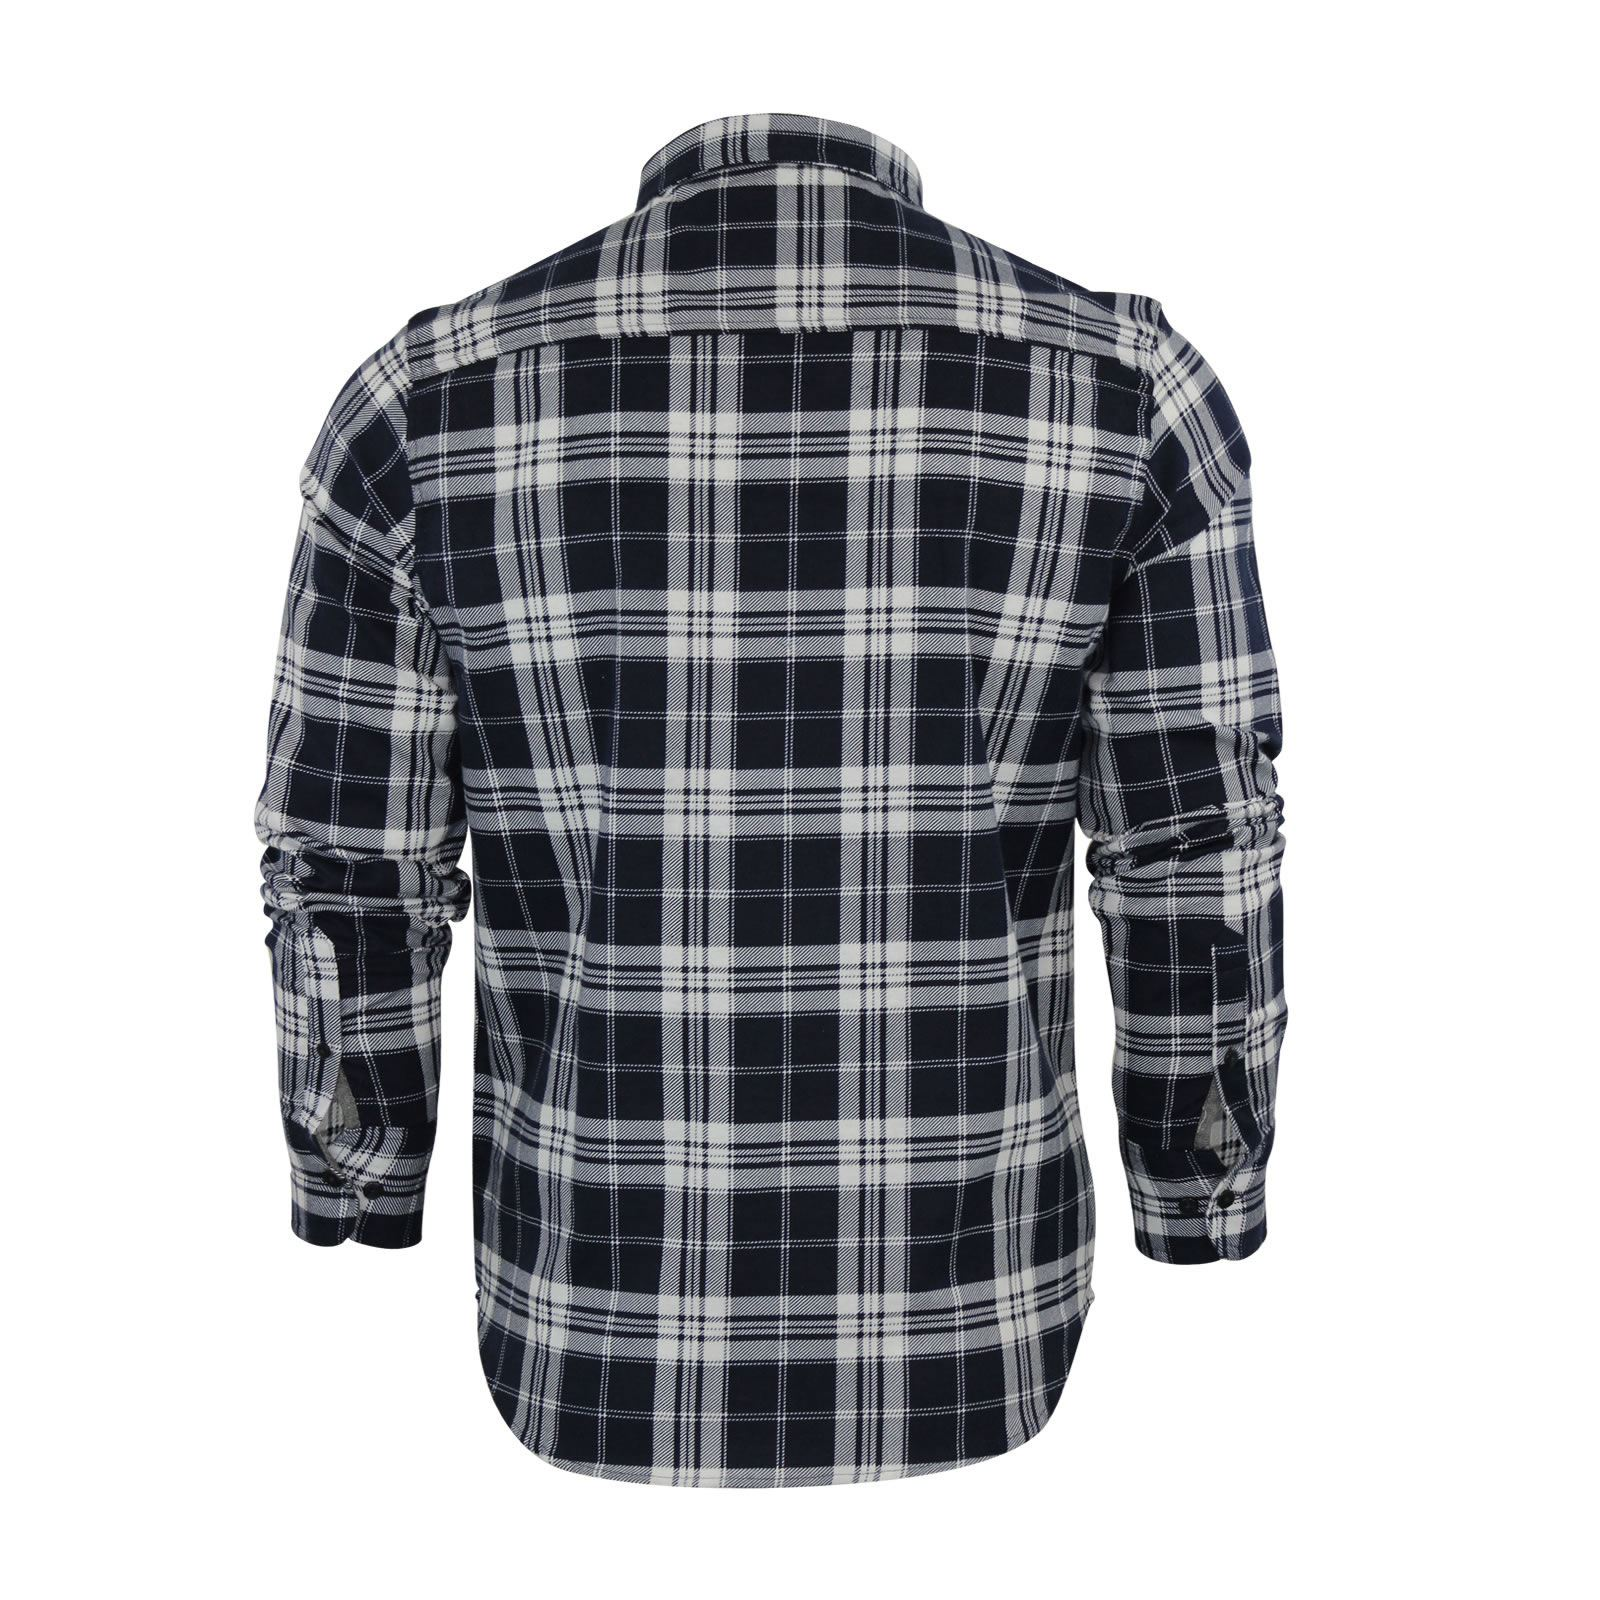 Mens-Check-Shirt-Brave-Soul-Flannel-Brushed-Cotton-Long-Sleeve-Casual-Top thumbnail 30